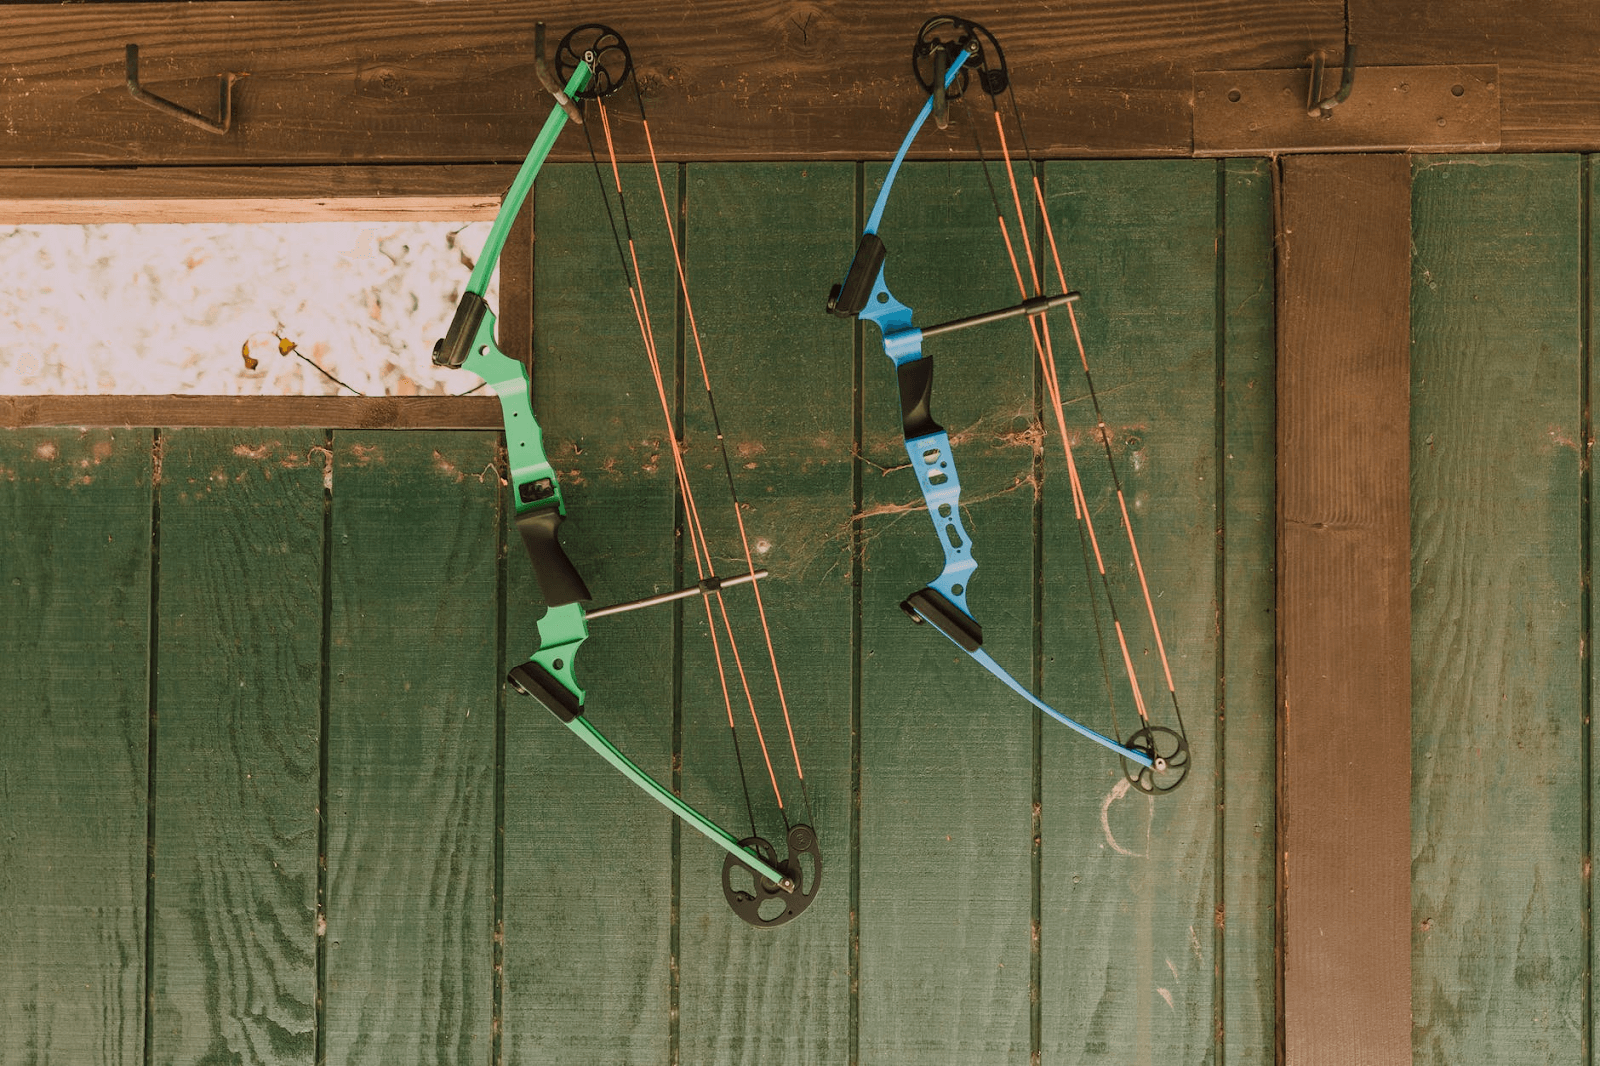 A green and a blue archery bow